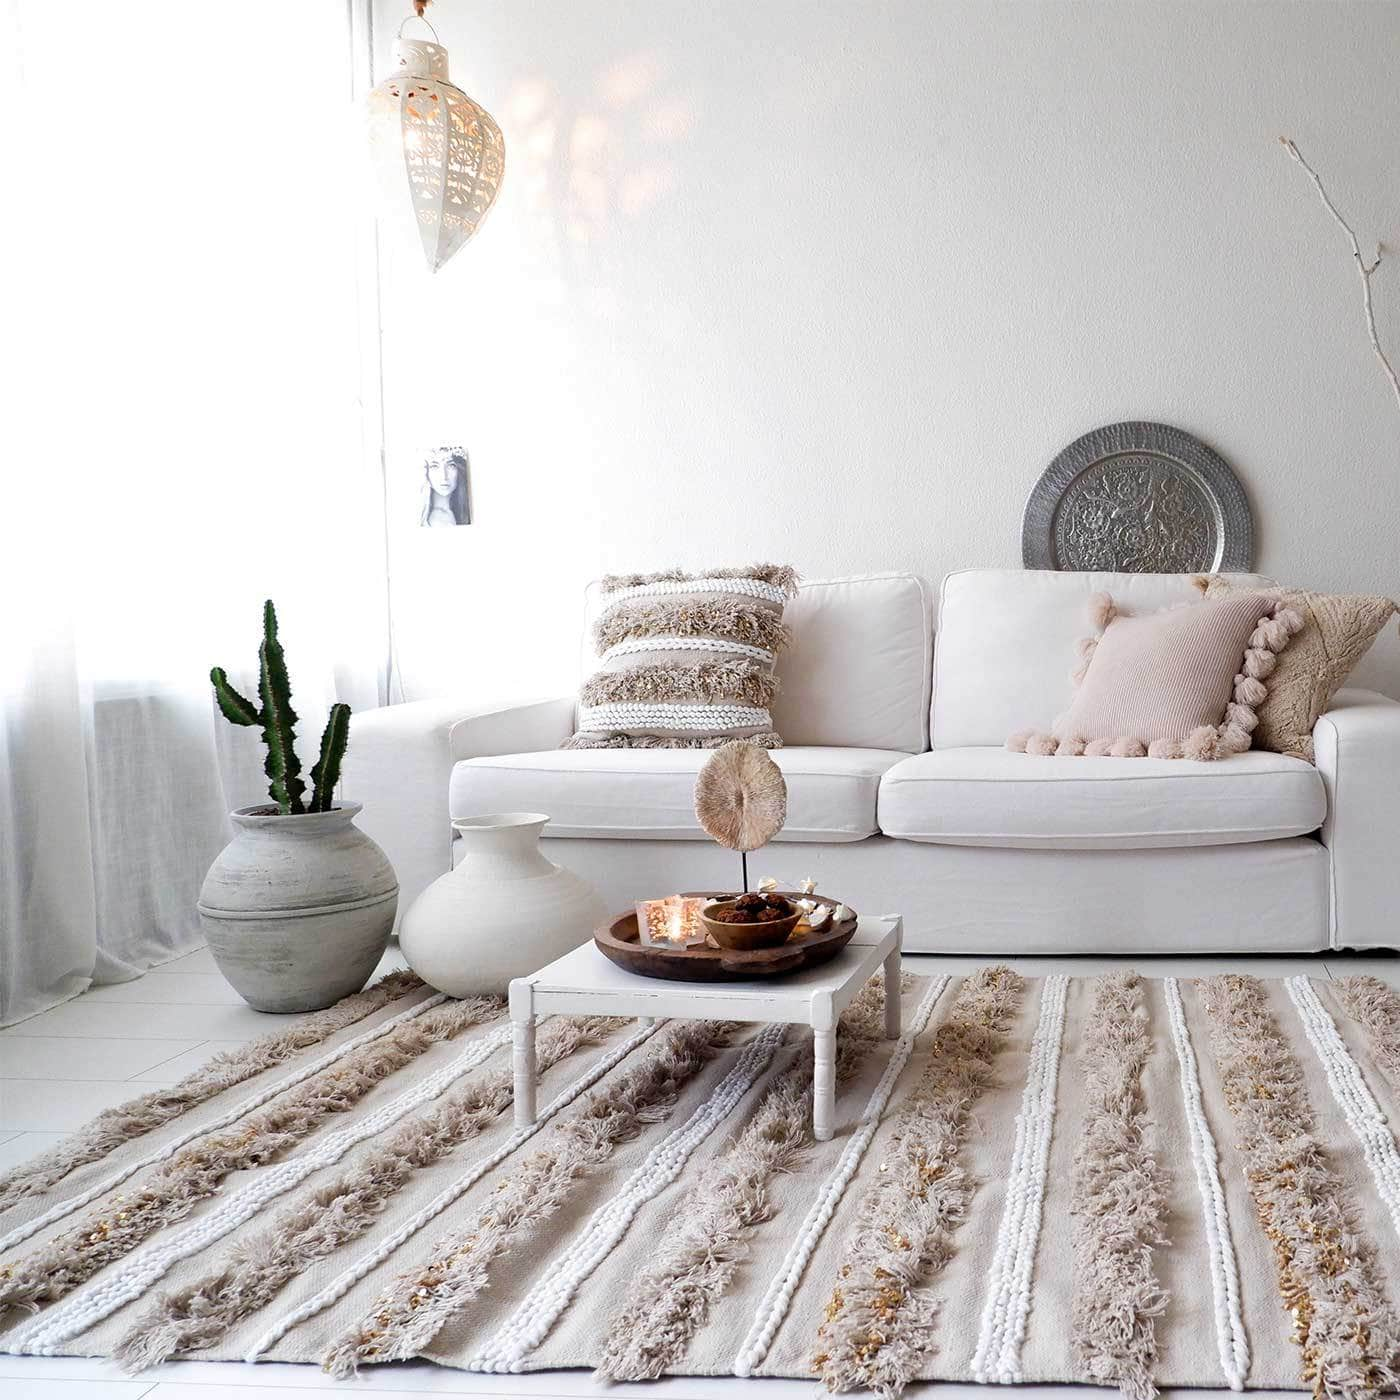 seeya collection bohemian rug with textured stripes in white and beige bohemian living room